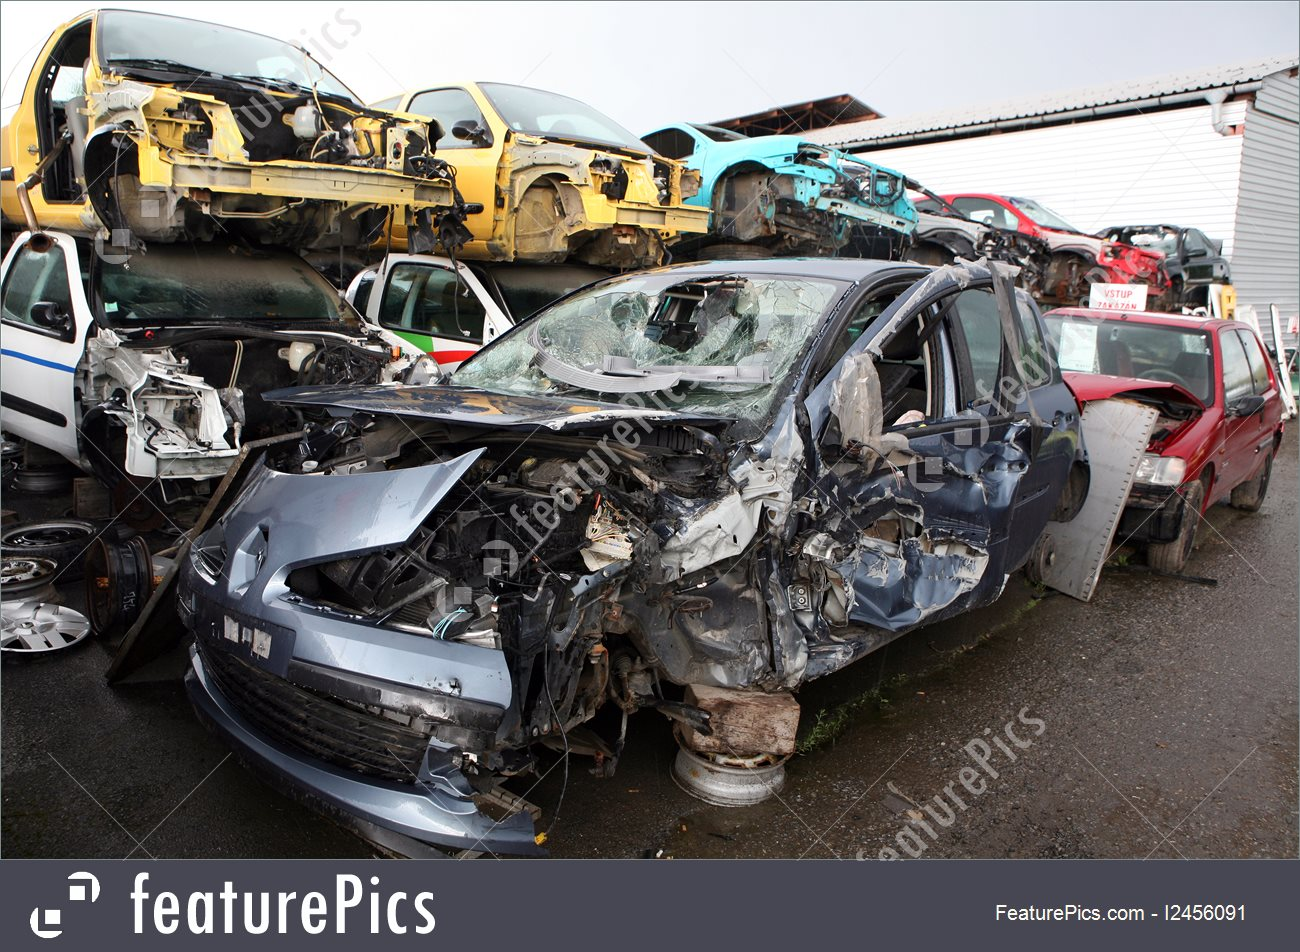 Photo Of Car Cemetery.